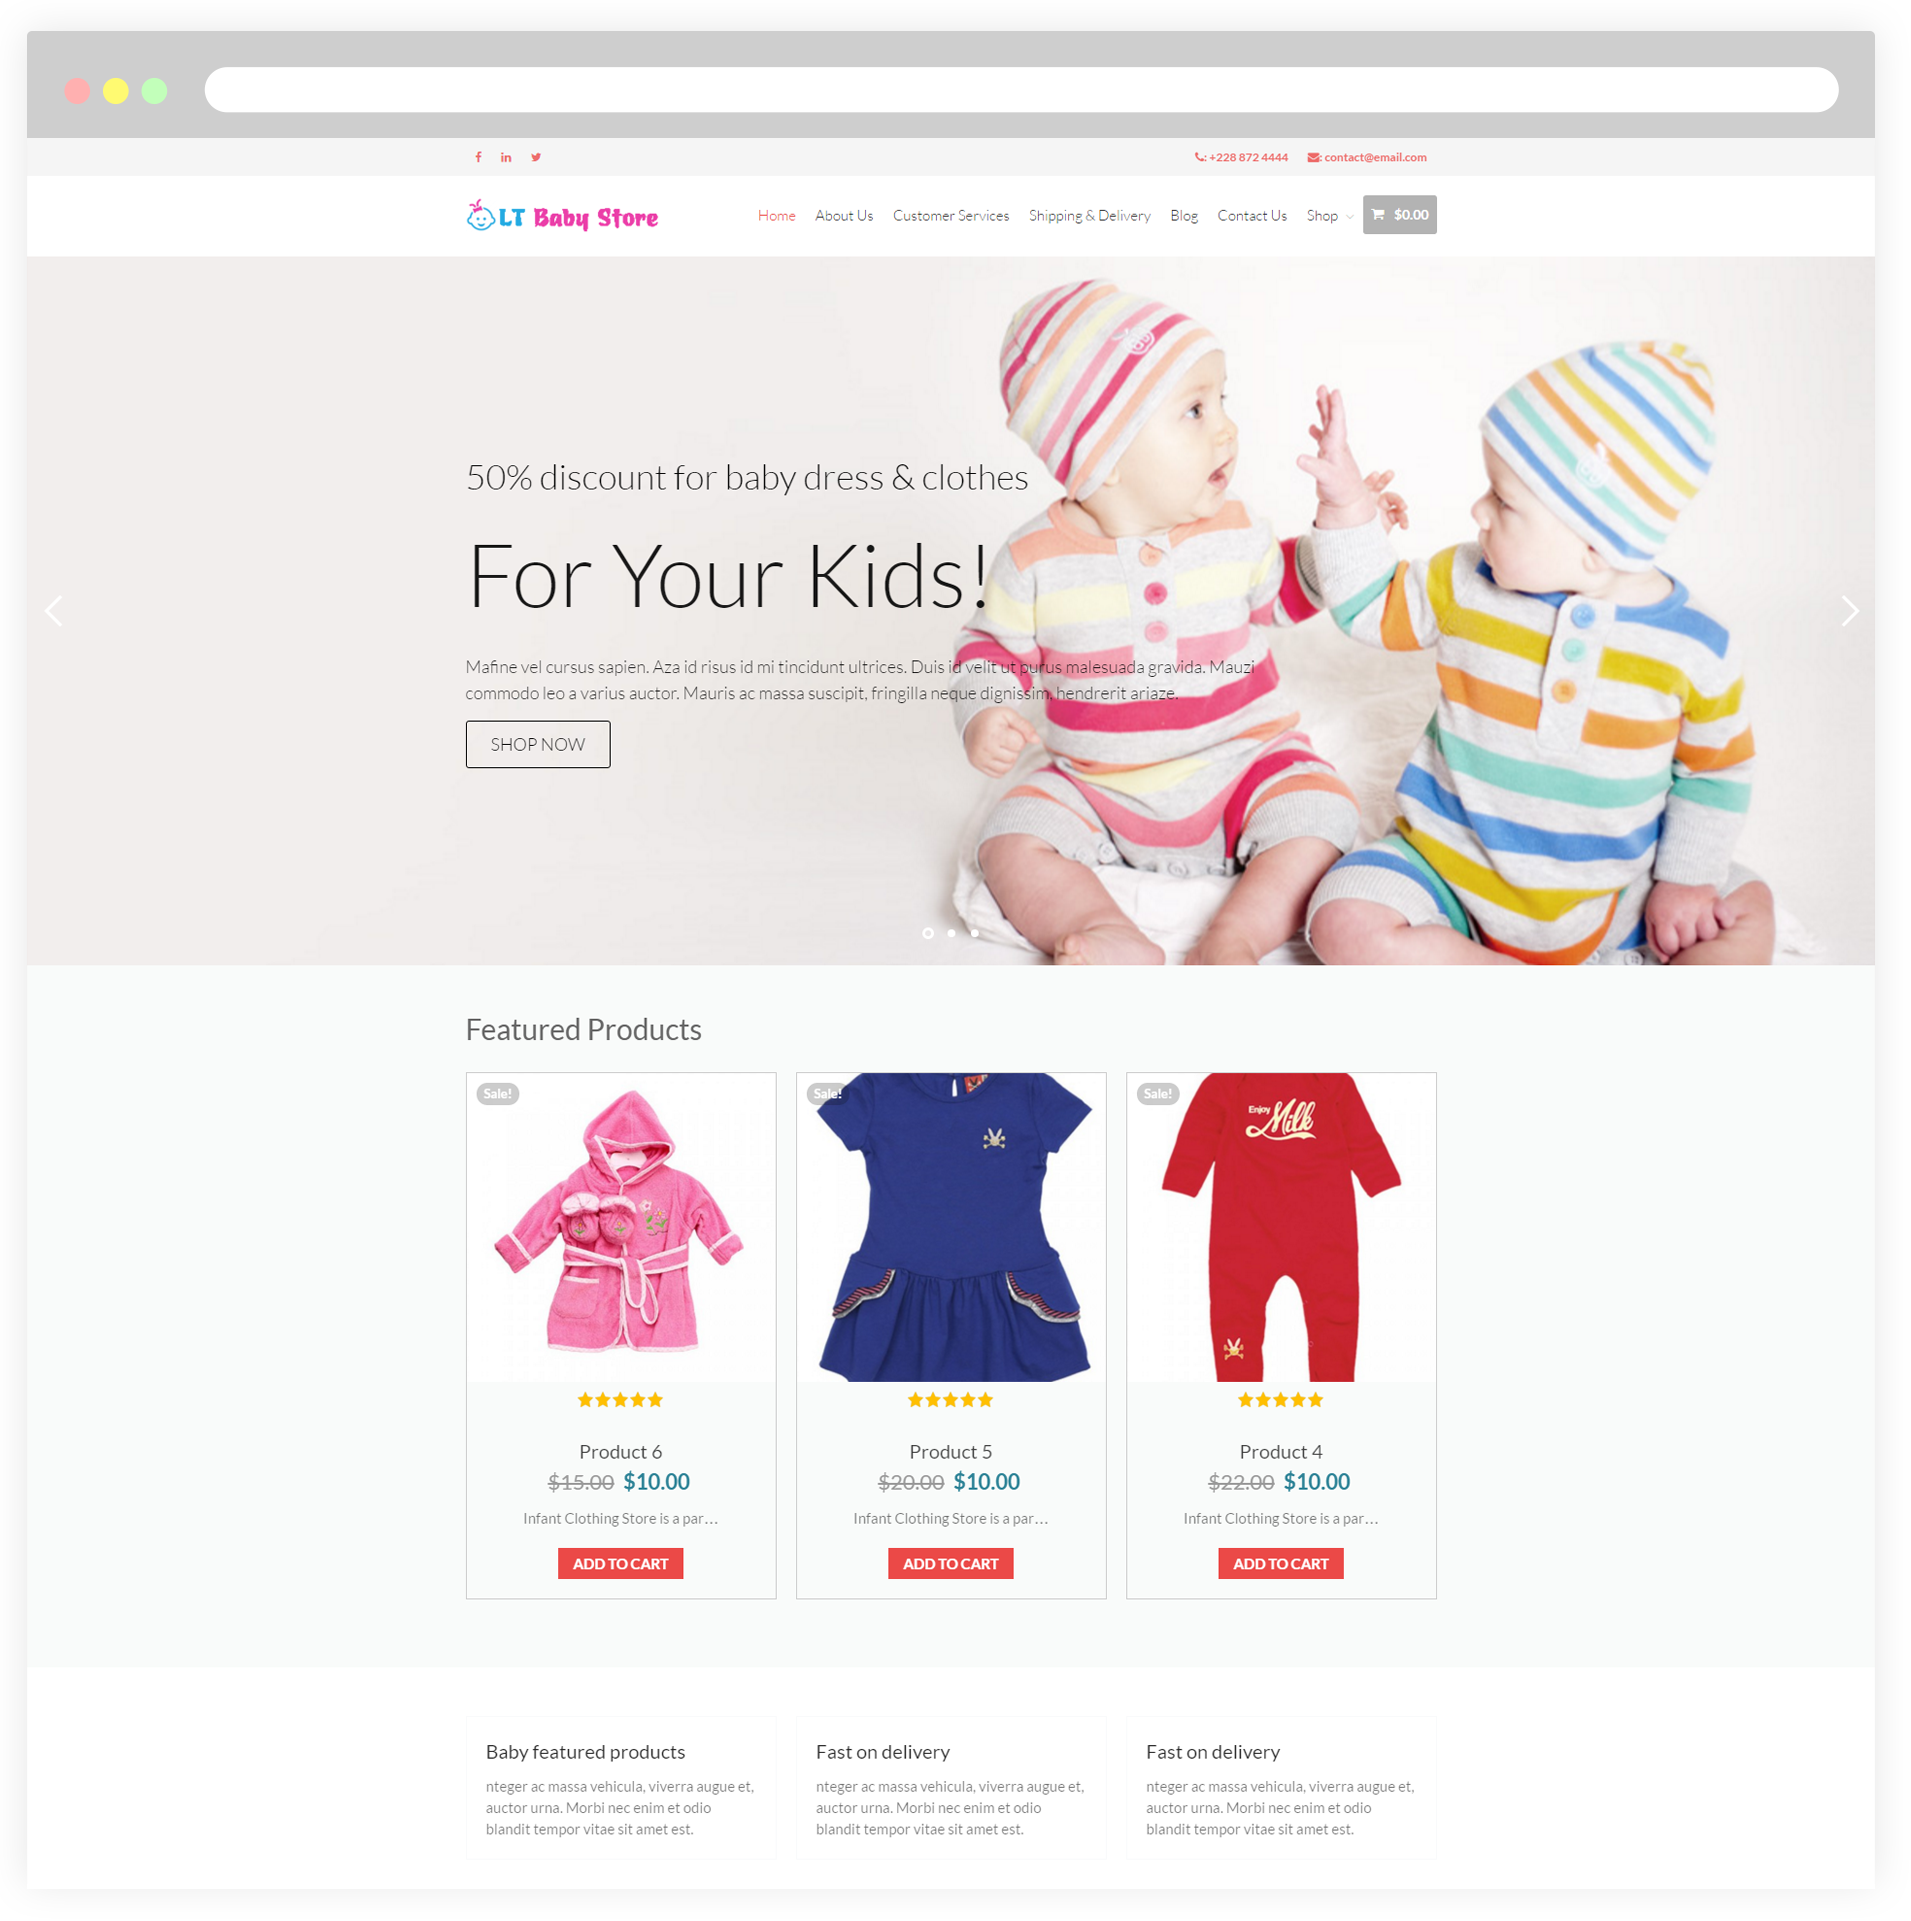 Shopping online for newborn babies